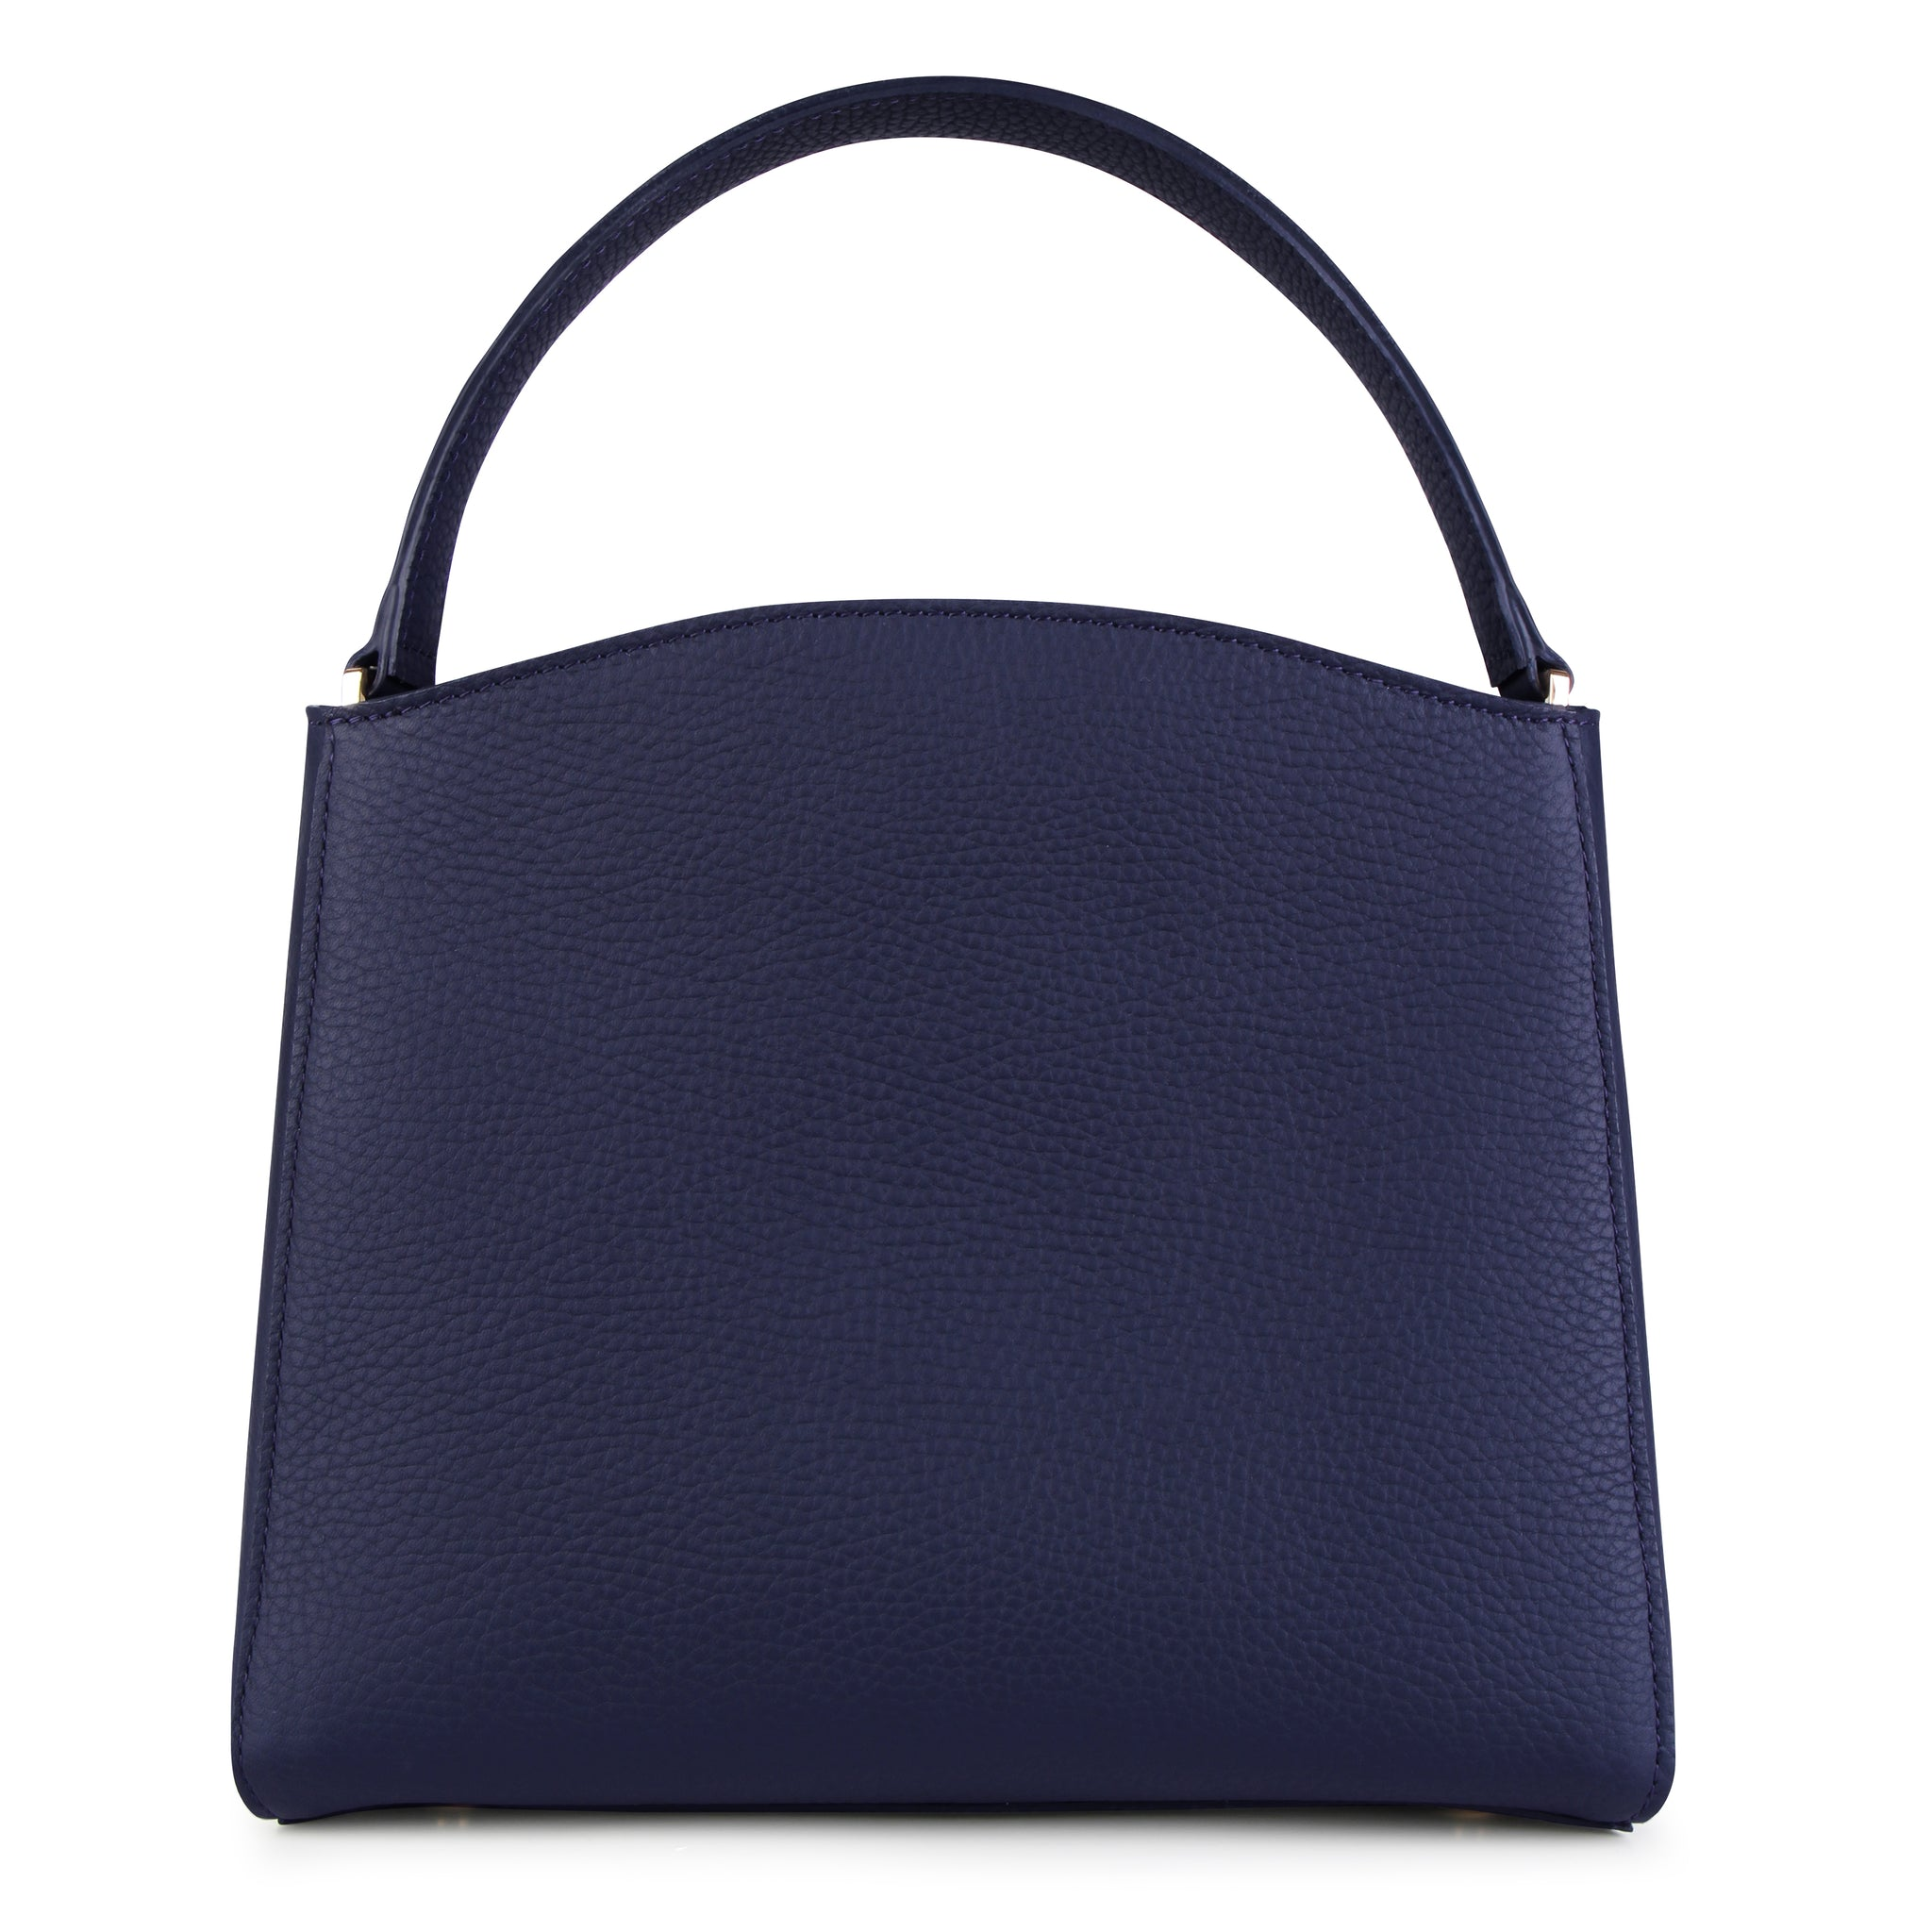 A medium size navy convertible leather top handle tote bag with a knot detail in front that could be used as a handheld mini tote bag, back image.